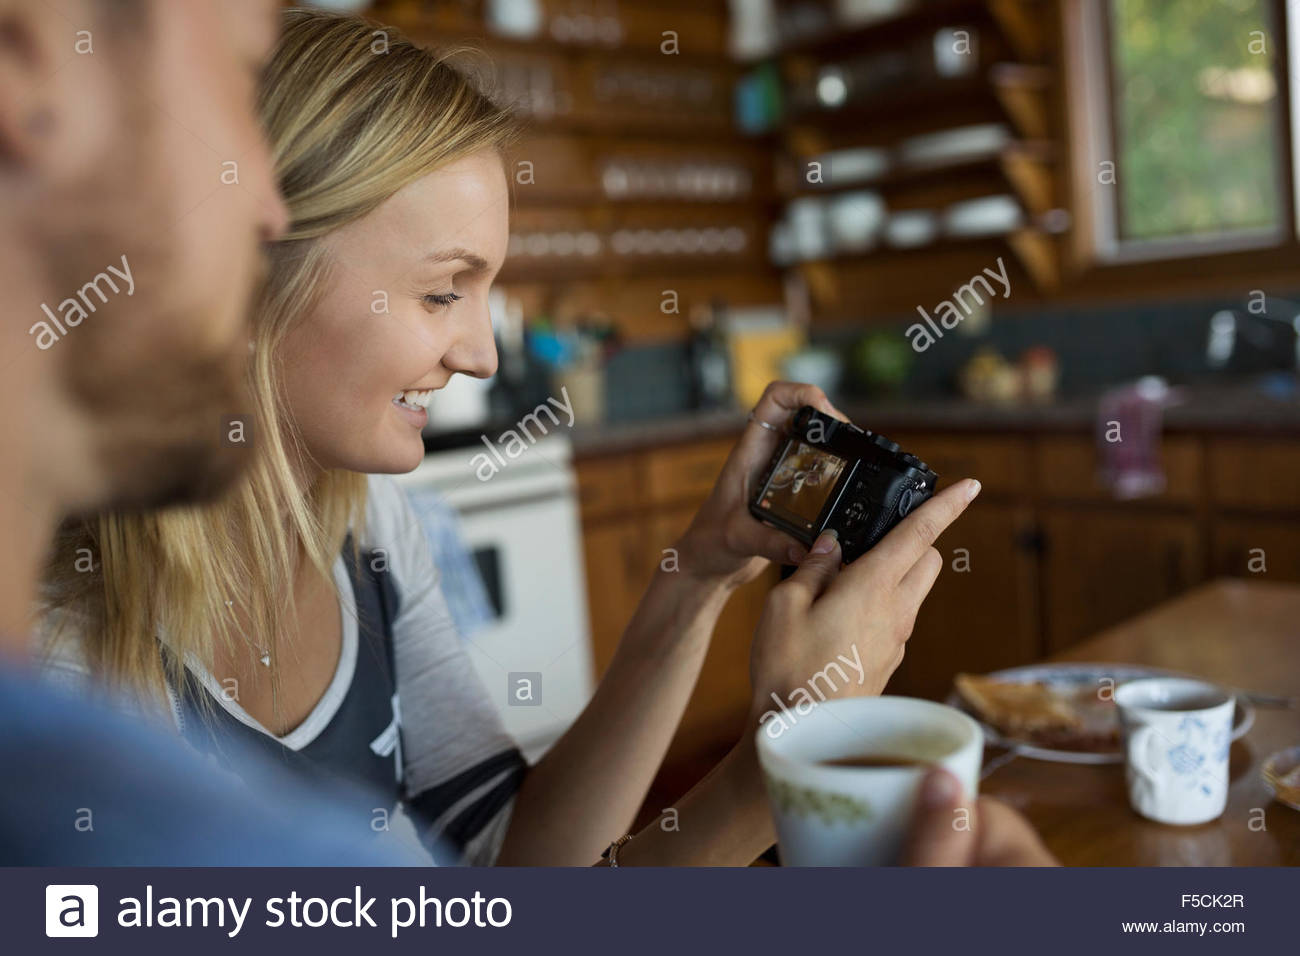 Young couple viewing digital camera in kitchen - Stock Image